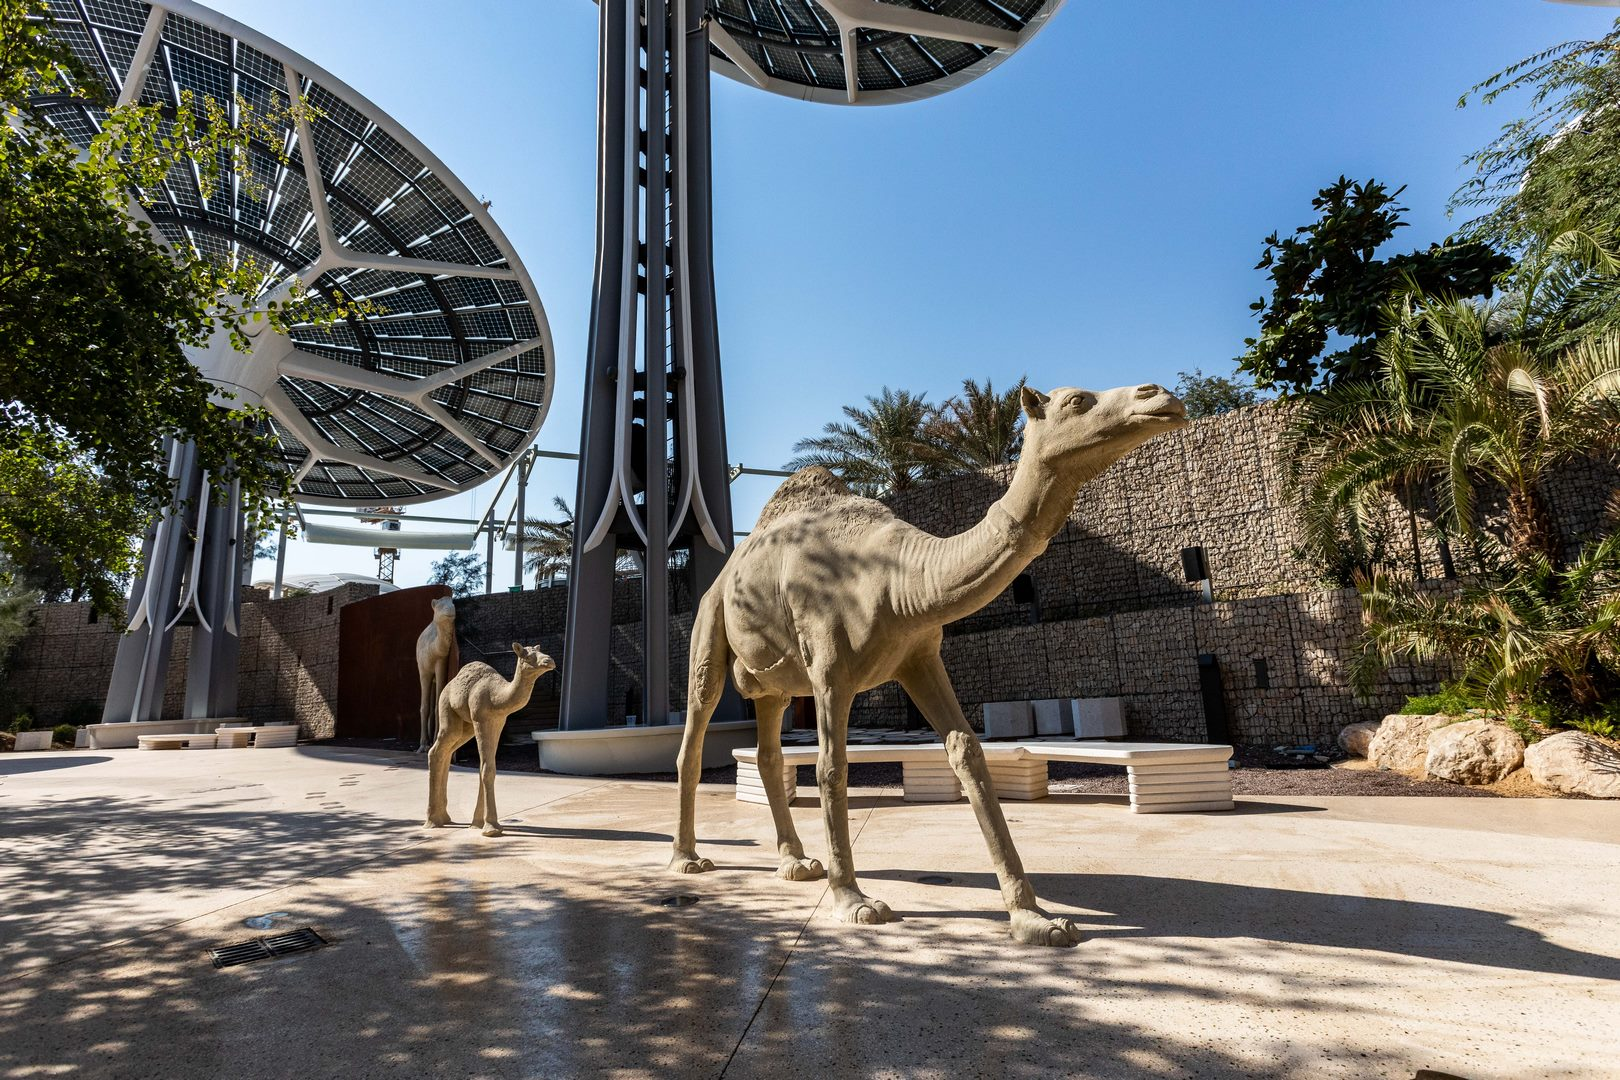 Terra Sustainable Development Pavilion opened on the eve of the World Exhibition EXPO 2020 Dubai